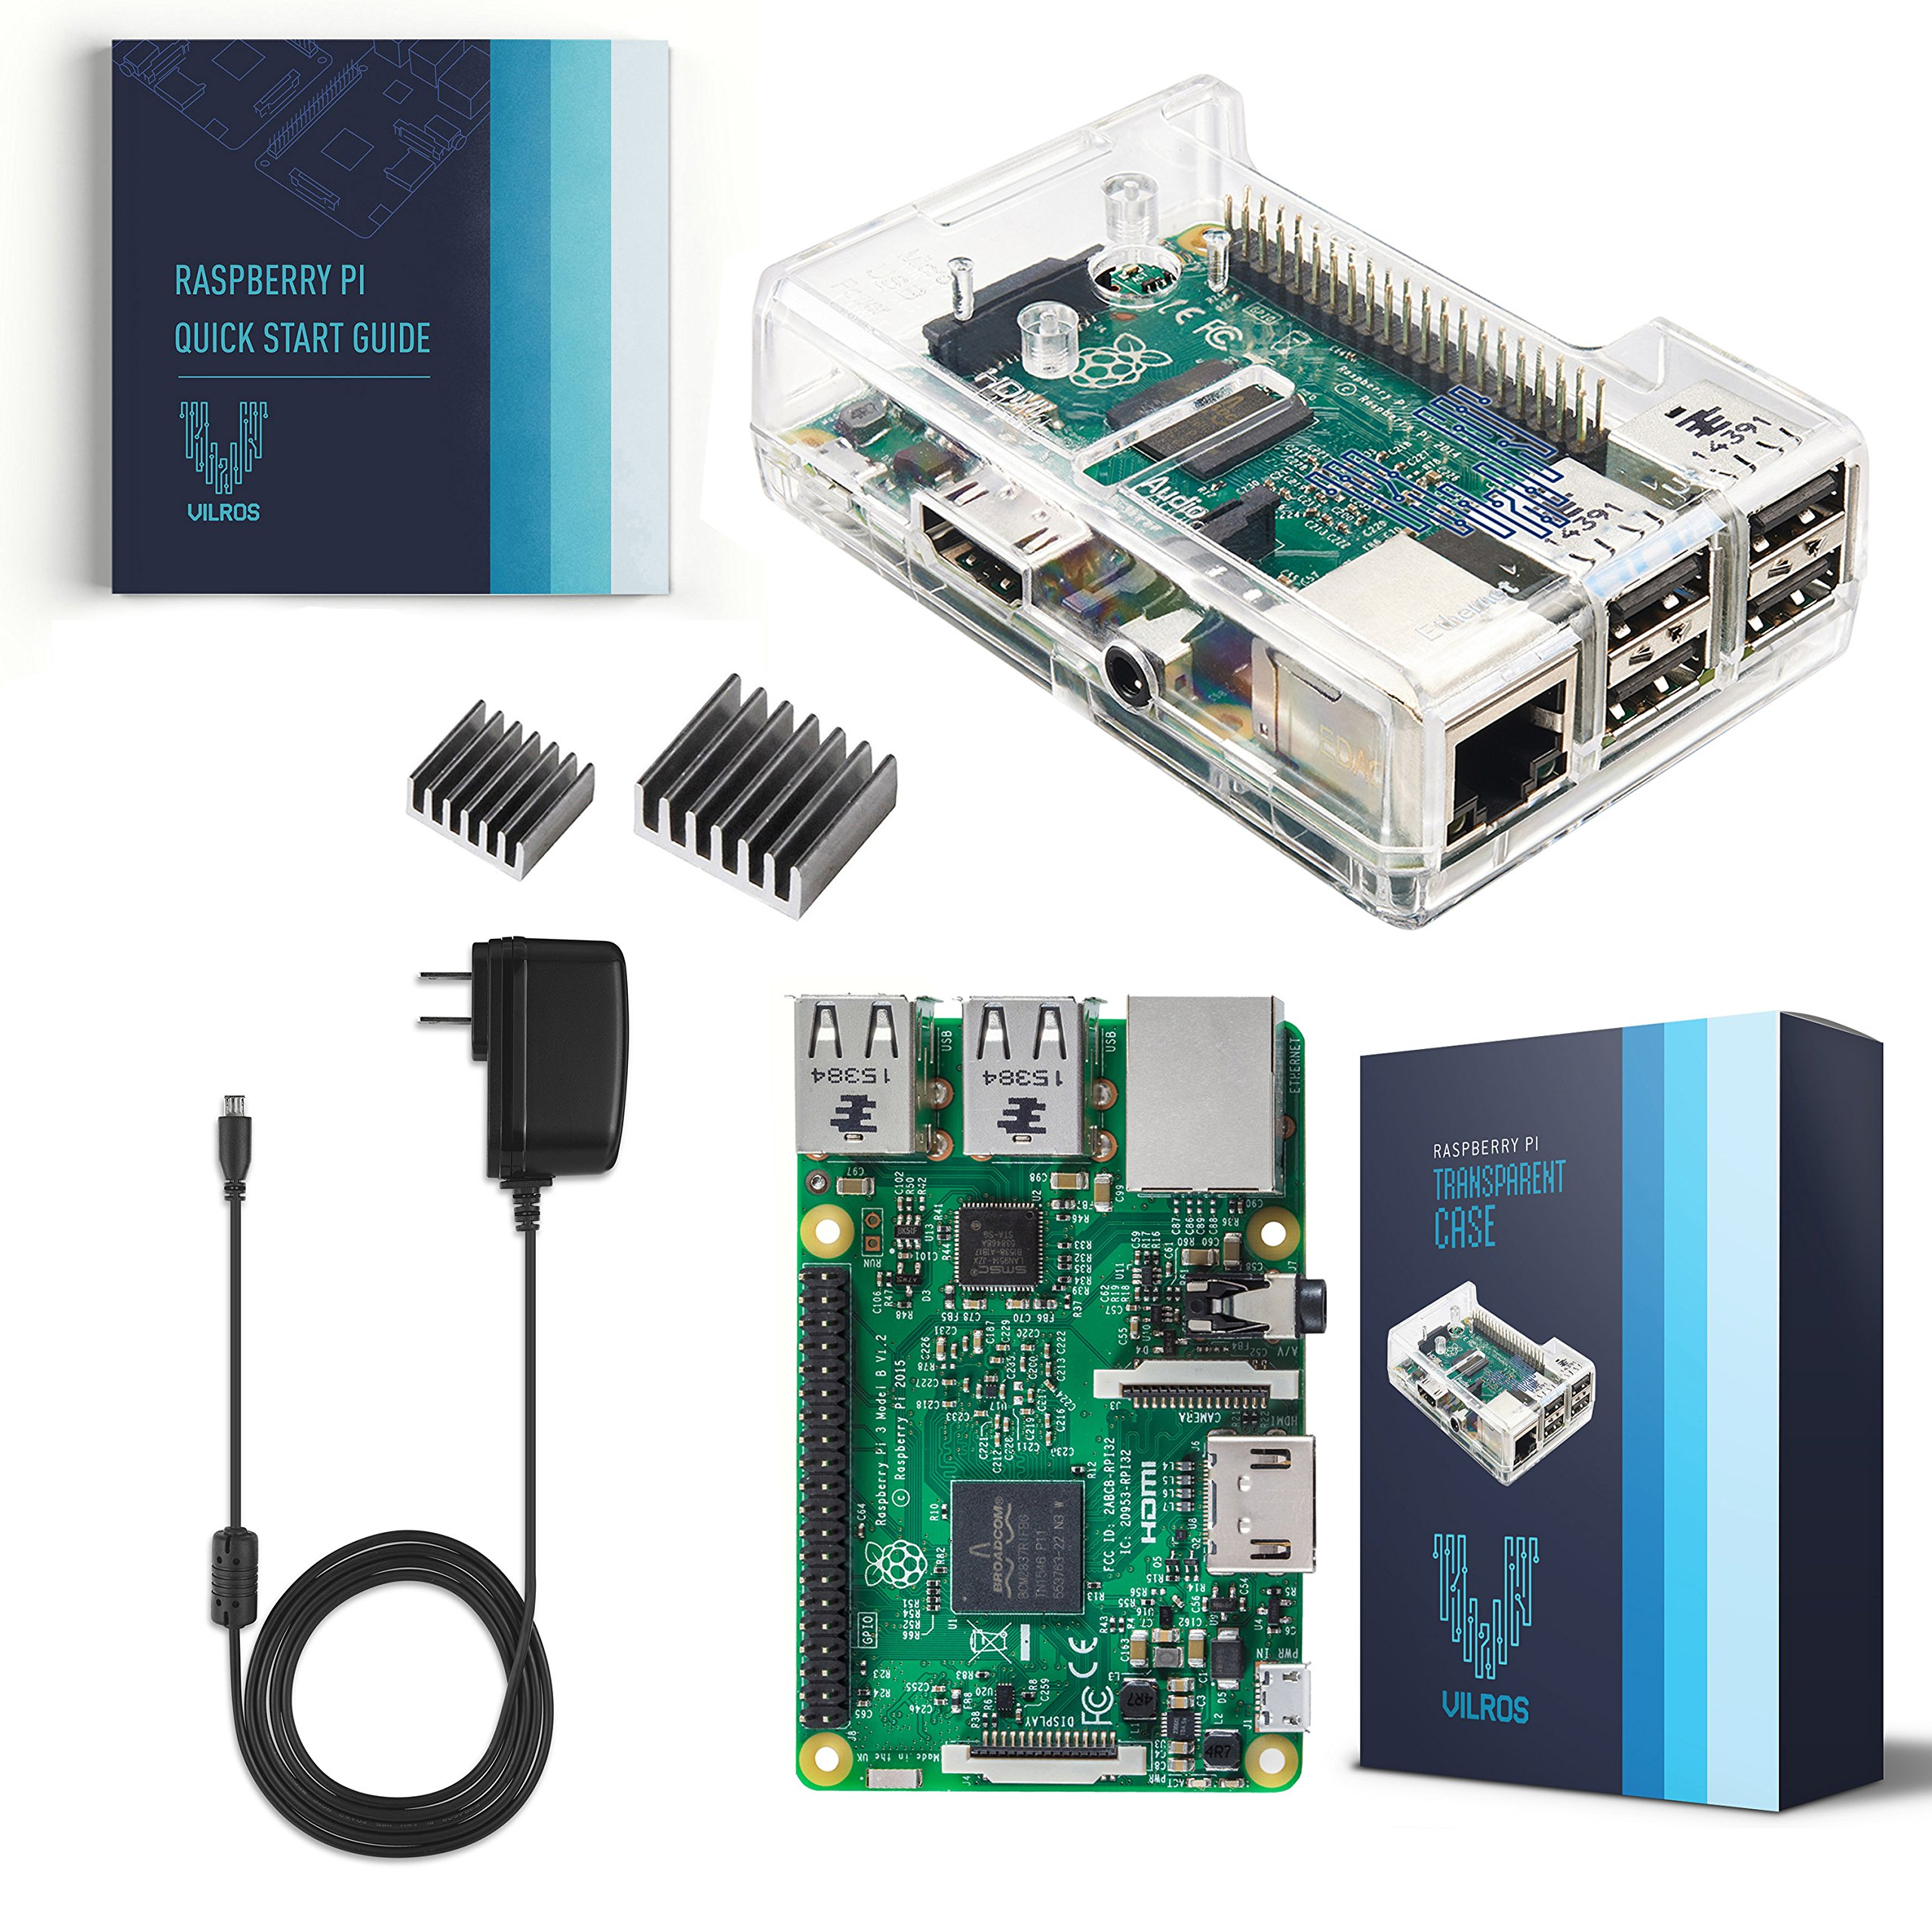 Vilros Raspberry Pi 3 Kit with Clear Case and 2.5A Power Supply by Vilros